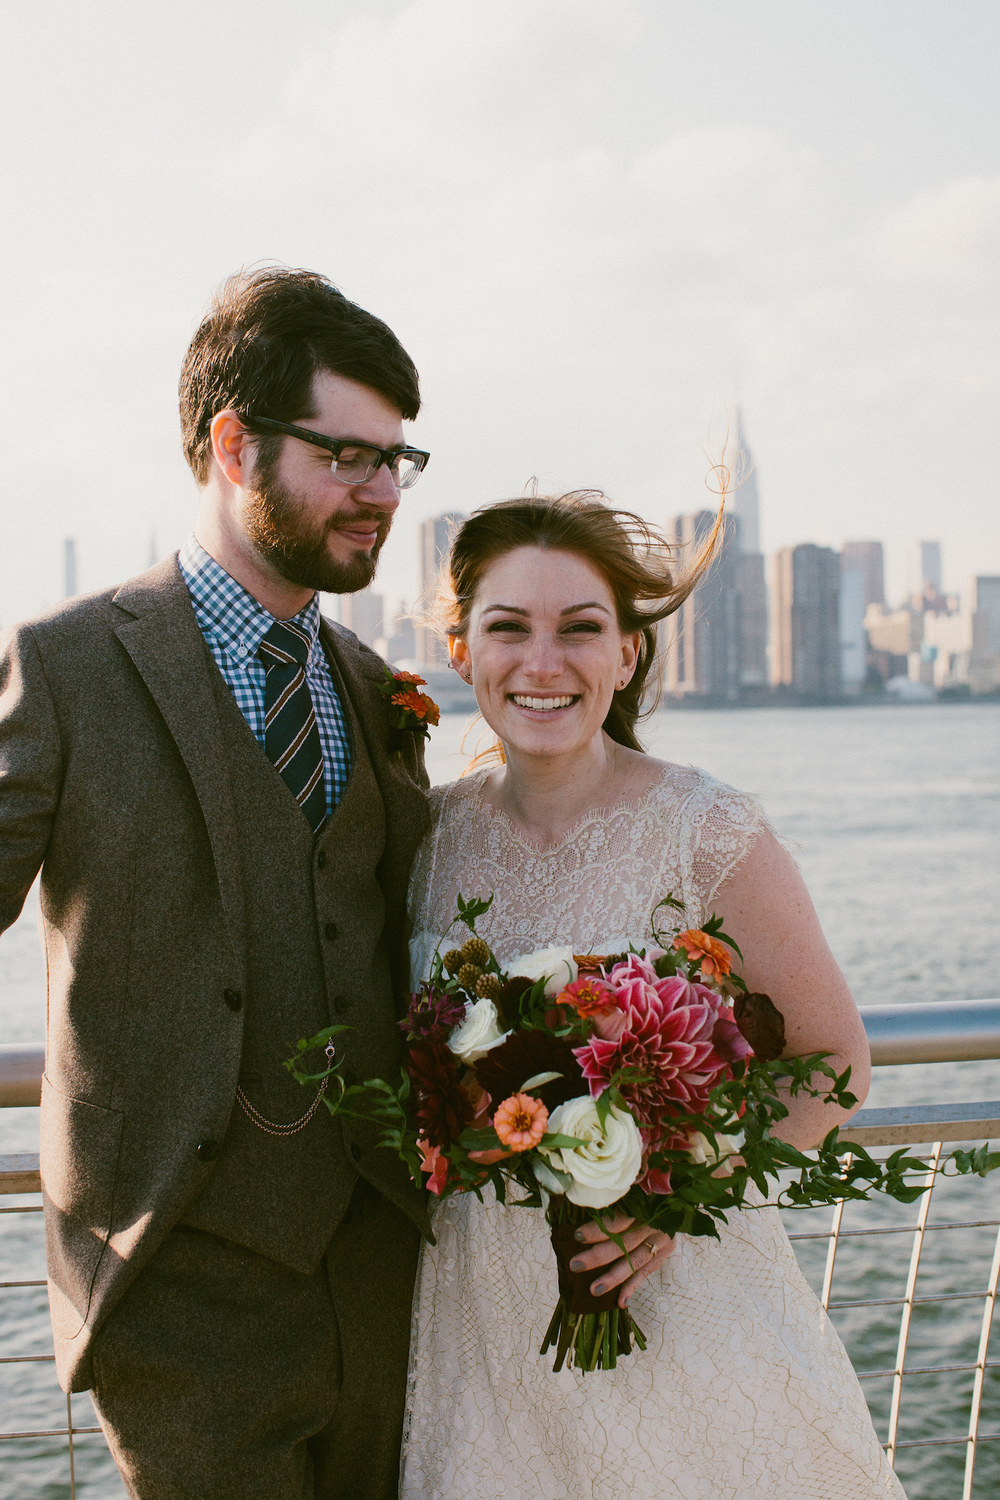 Full Aperture Floral & Corey Torpie Photography  - Brooklyn Wedding - 59.jpeg